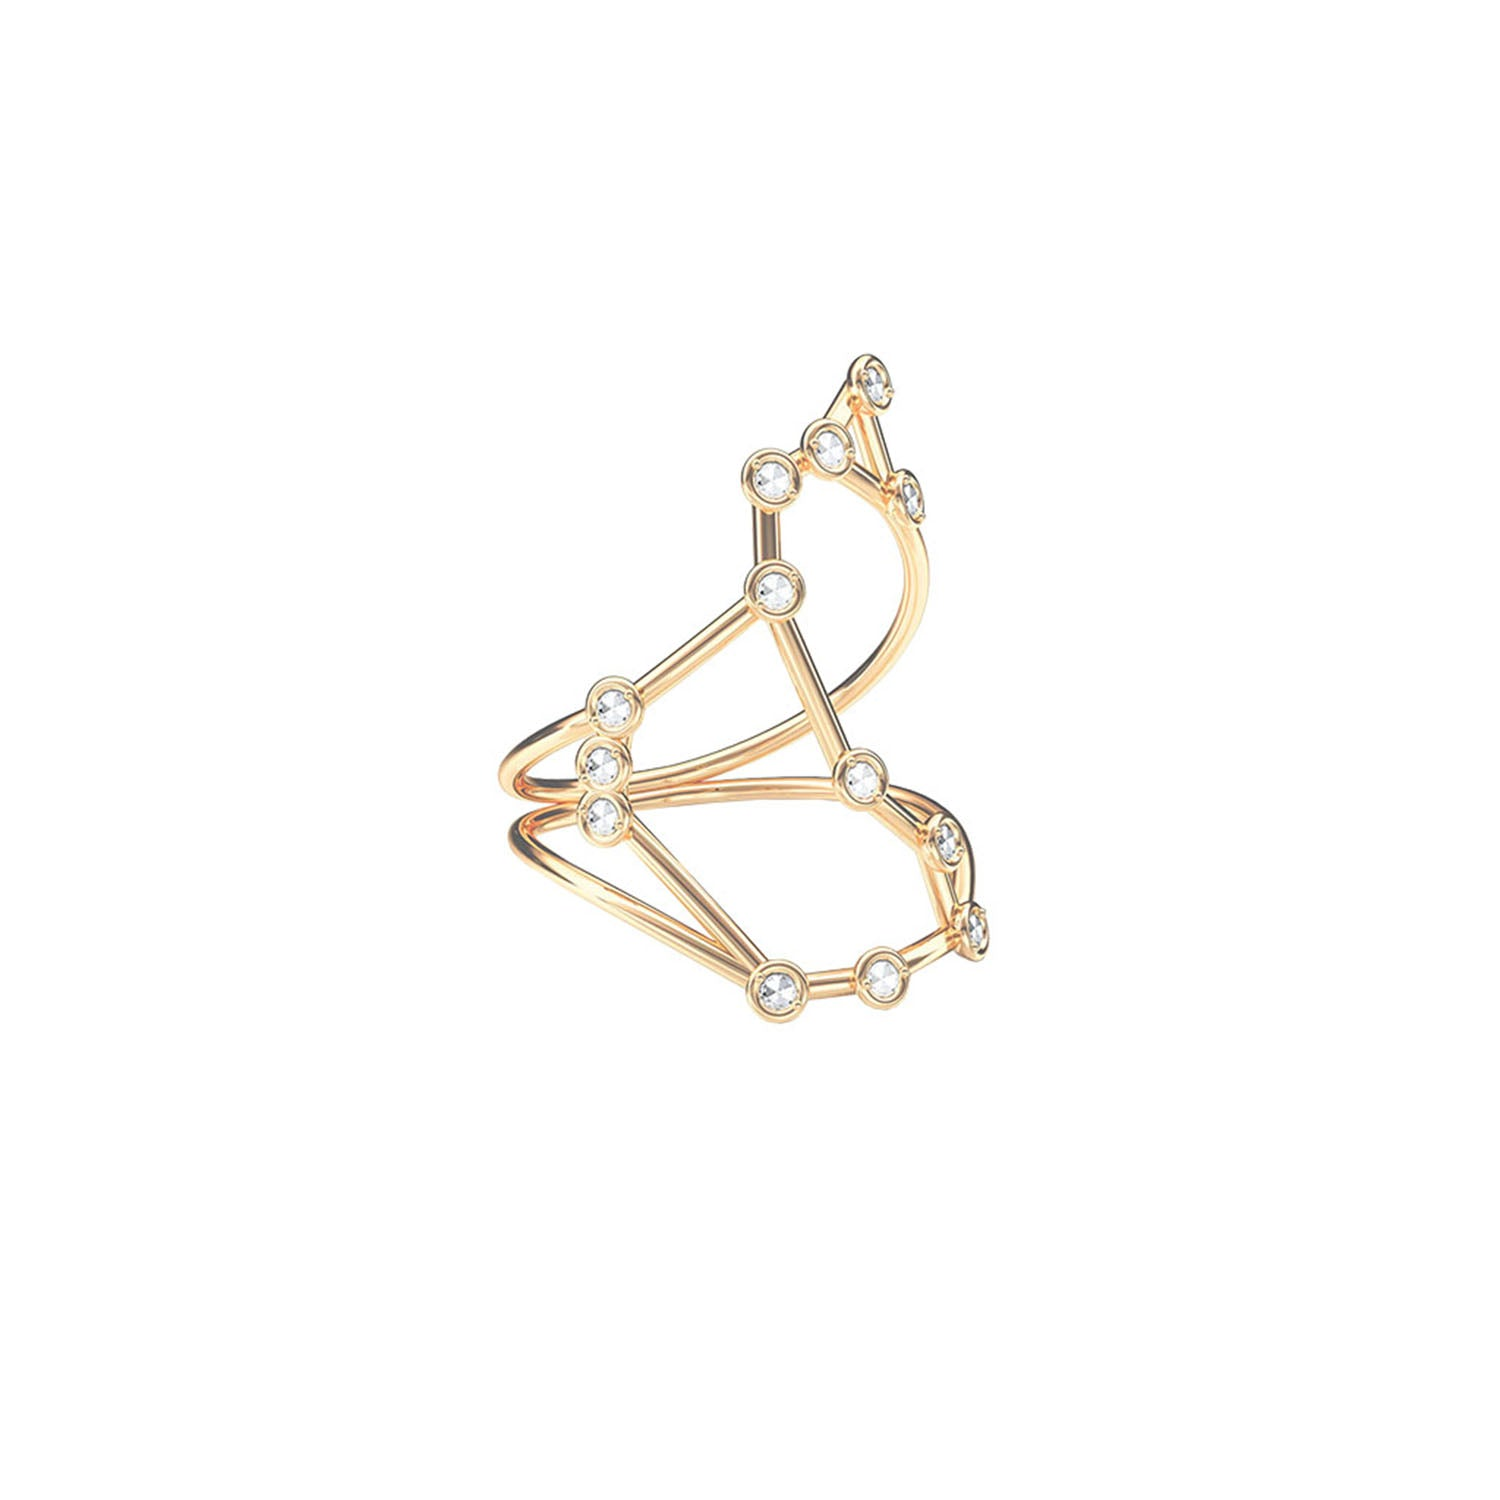 Gold & White Diamond Scorpio Constellation Ring by Jessie Ve for Broken English Jewelry